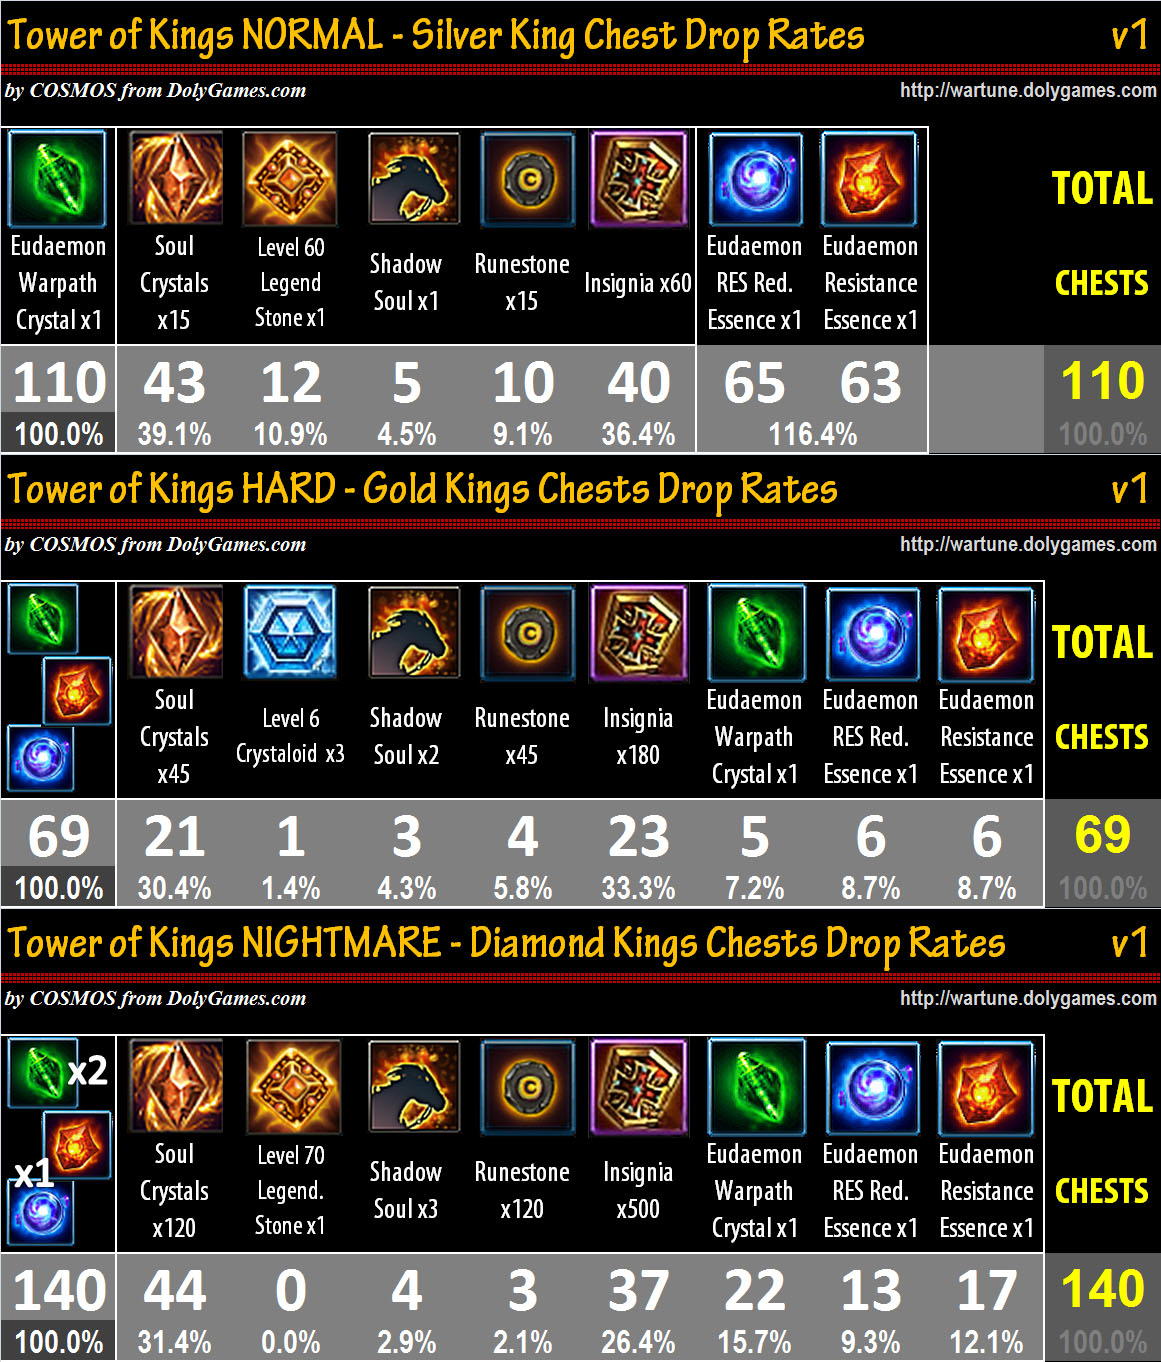 Tower of Kings Drop Rates v1 after Eudaemons